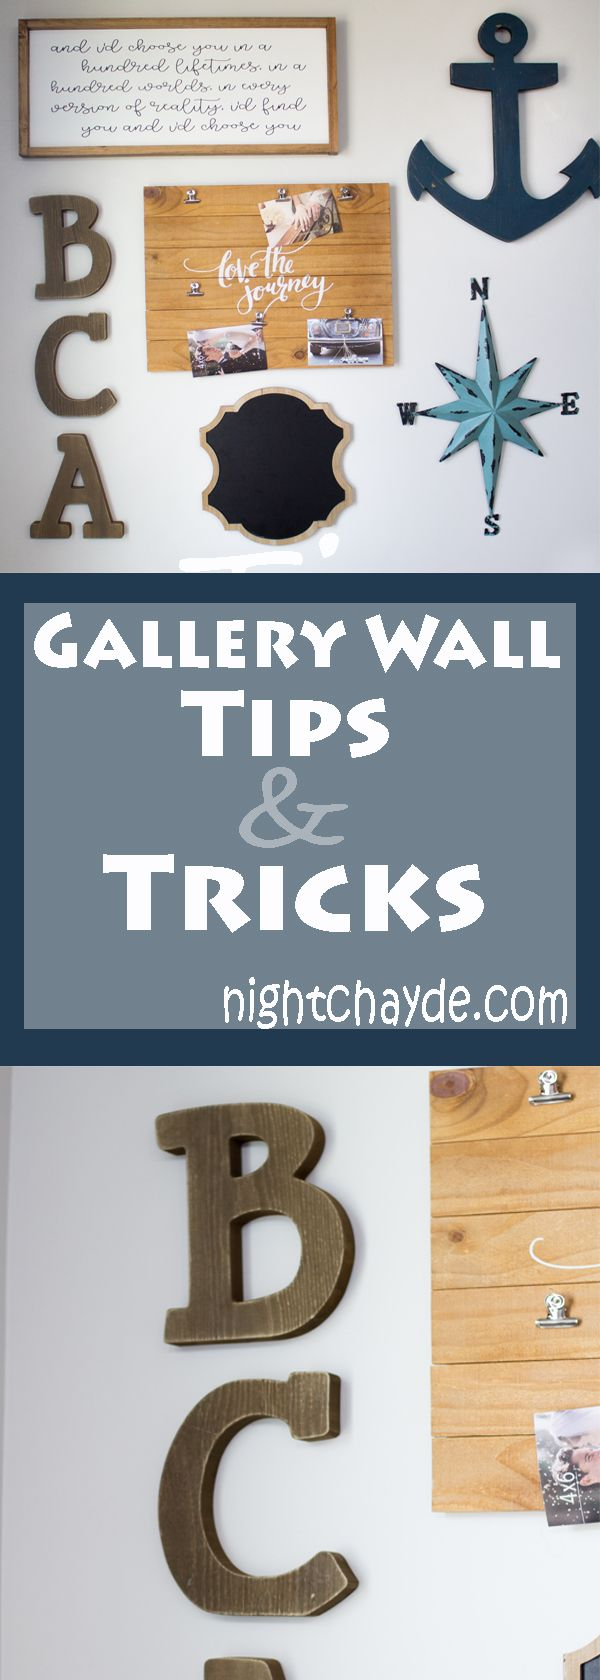 gallery wall tips and tricks, gallery wall, gallery wall how to, how to create a gallery wall, collage wall, nautical collage wall, wall art, wall decor, hobby lobby, home decor, gallery, wall, gallery wall tricks, gallery wall hack, interior design, design, home design,